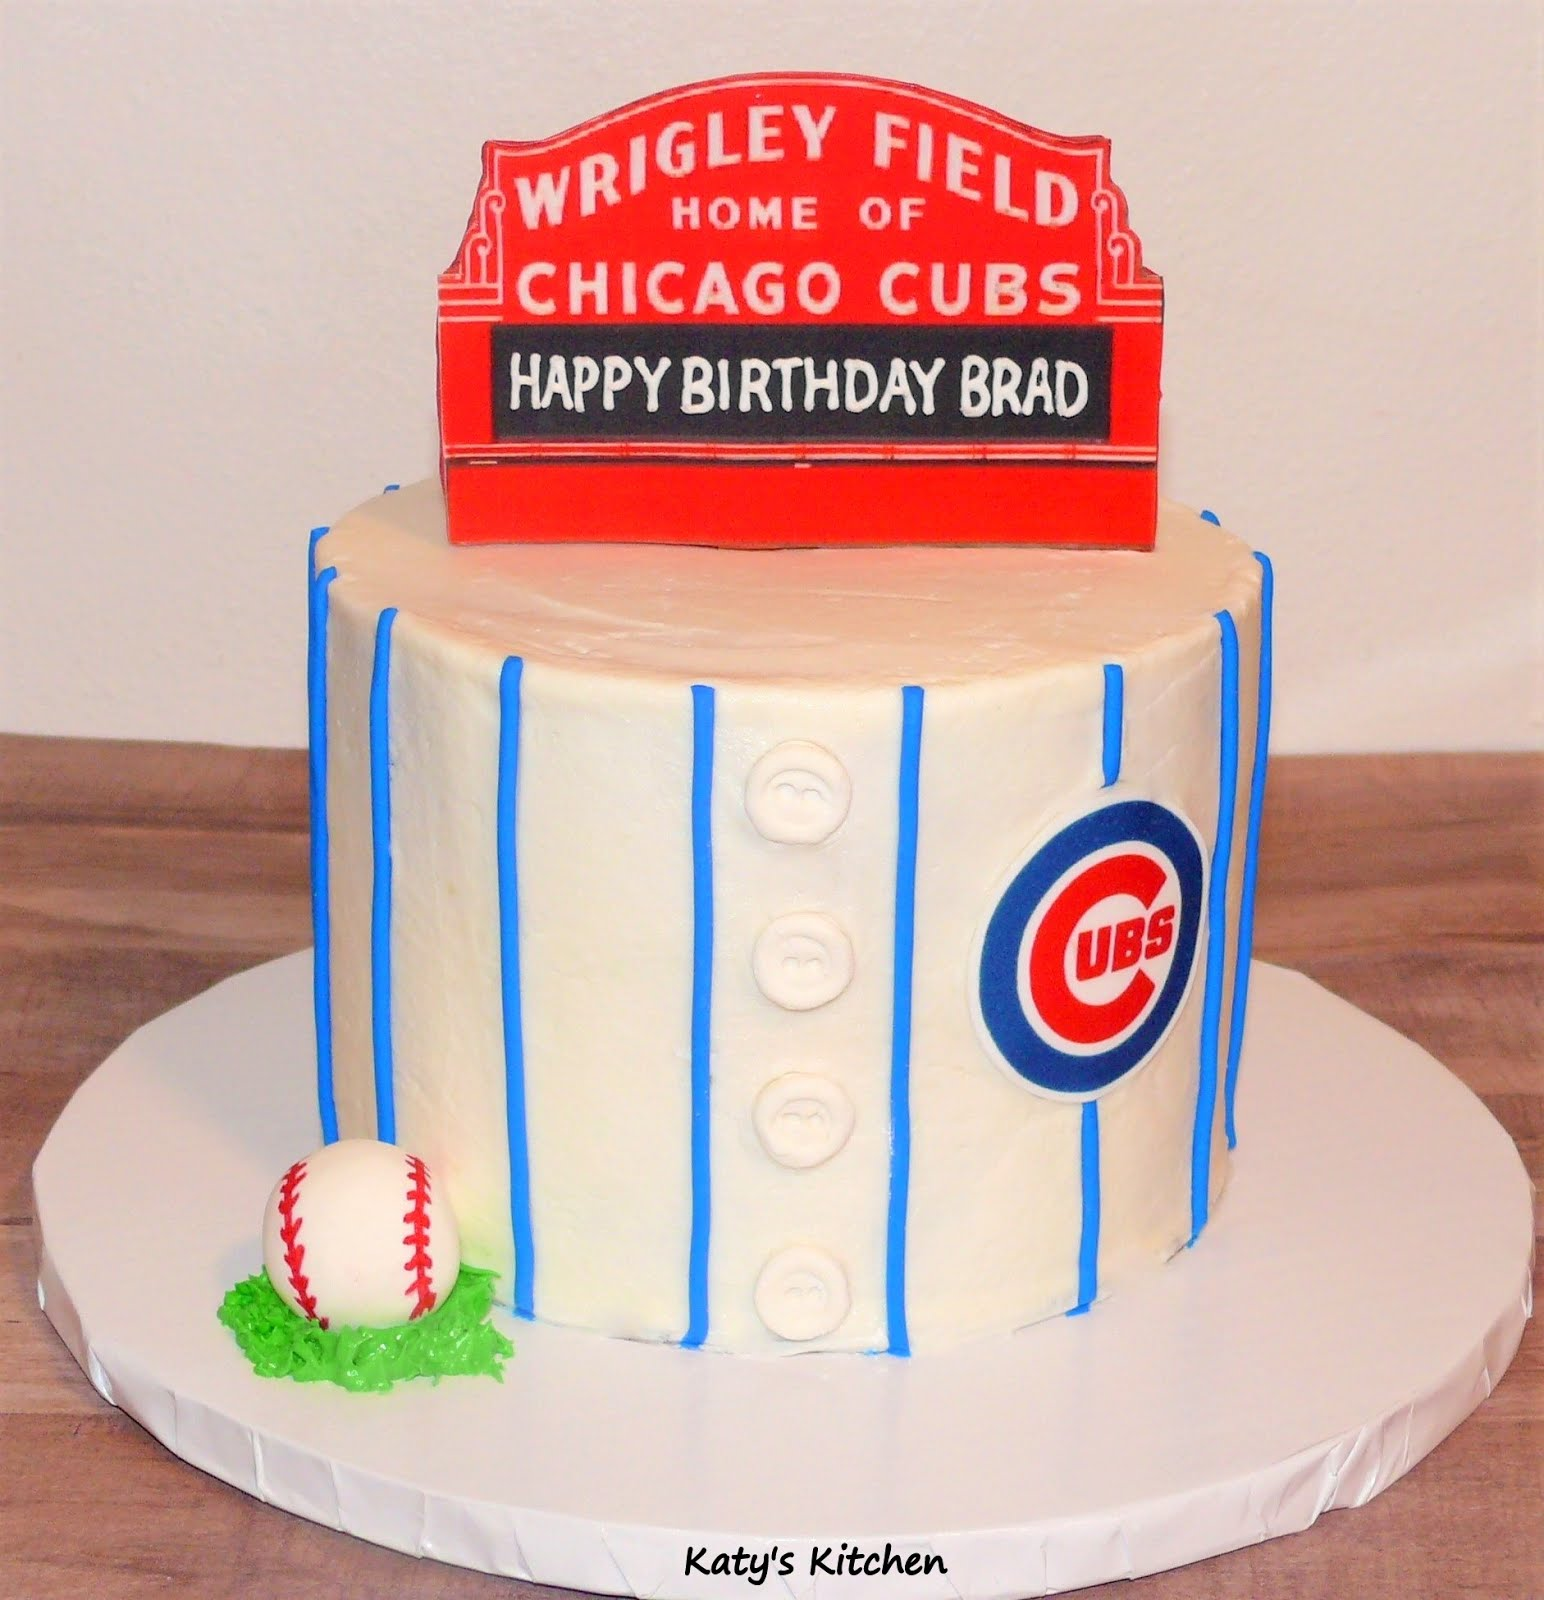 Swell Katys Kitchen Chicago Cubs Birthday Cake Personalised Birthday Cards Petedlily Jamesorg